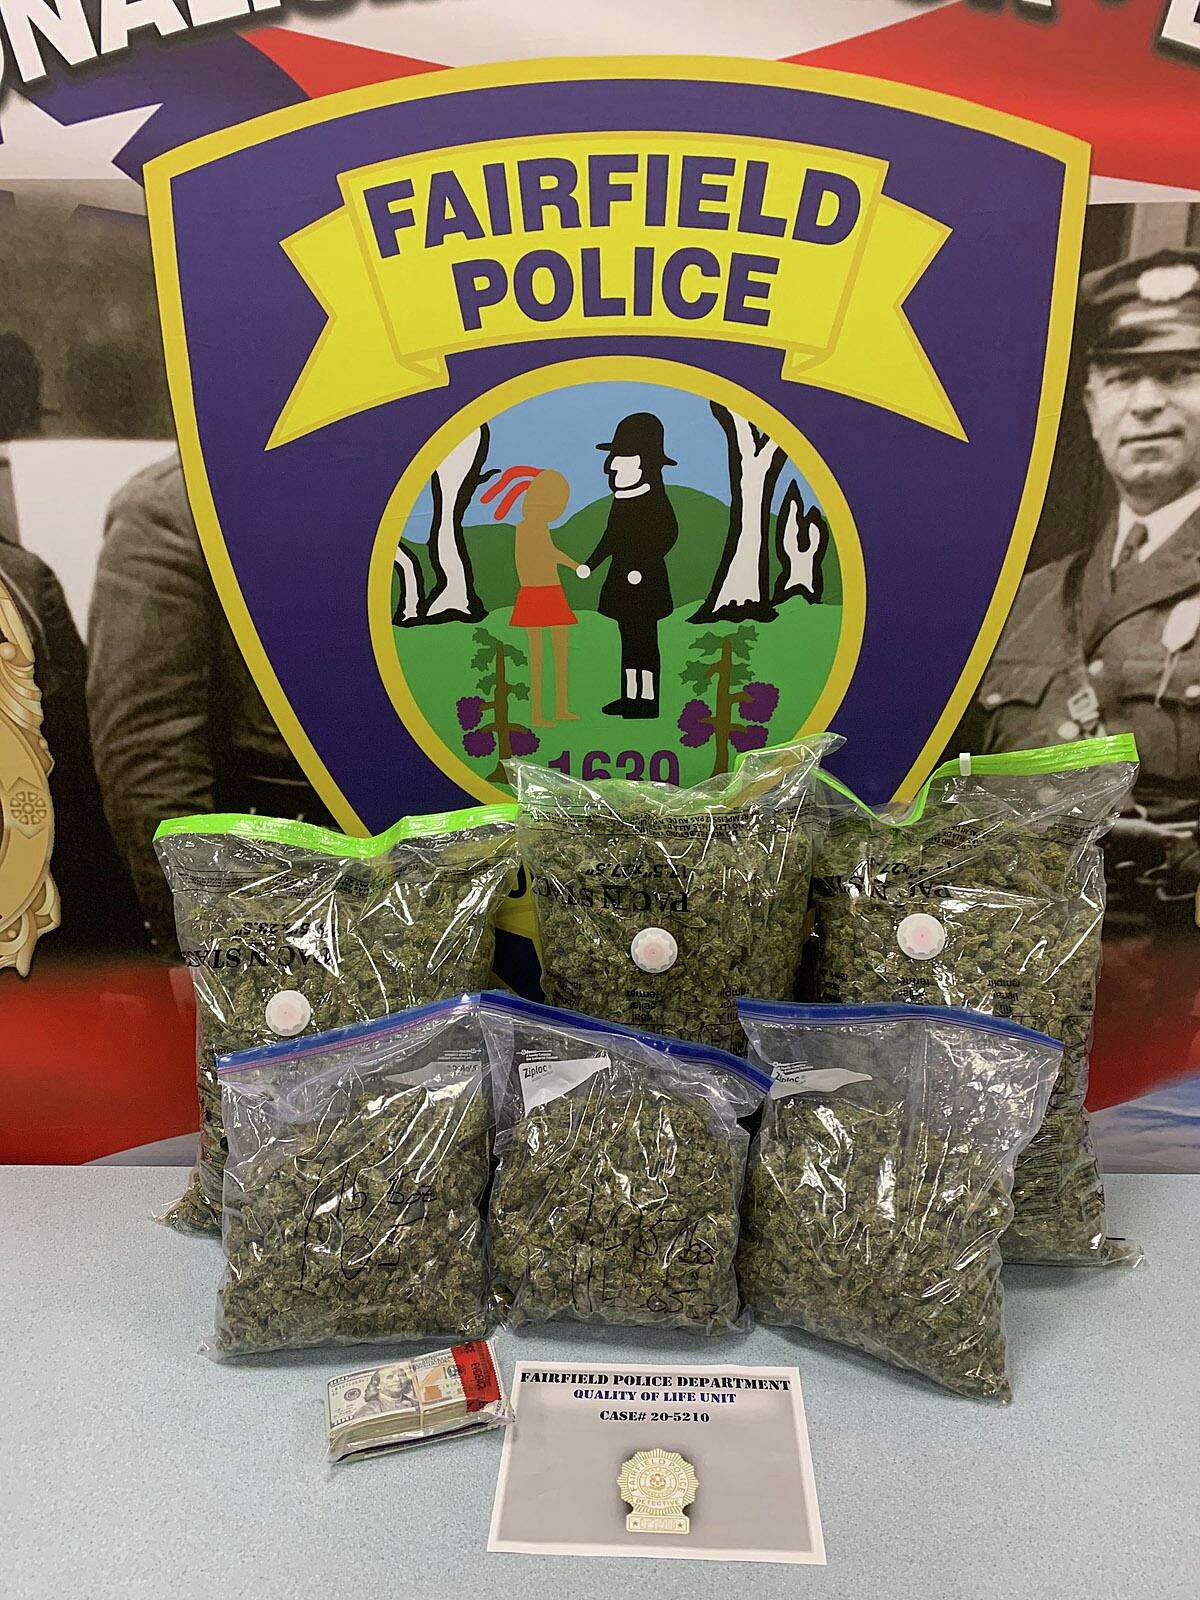 The investigation led to the discovery in a Fairfield motel of 16 pounds of marijuana, packaging material and an undisclosed amount of U.S. currency.